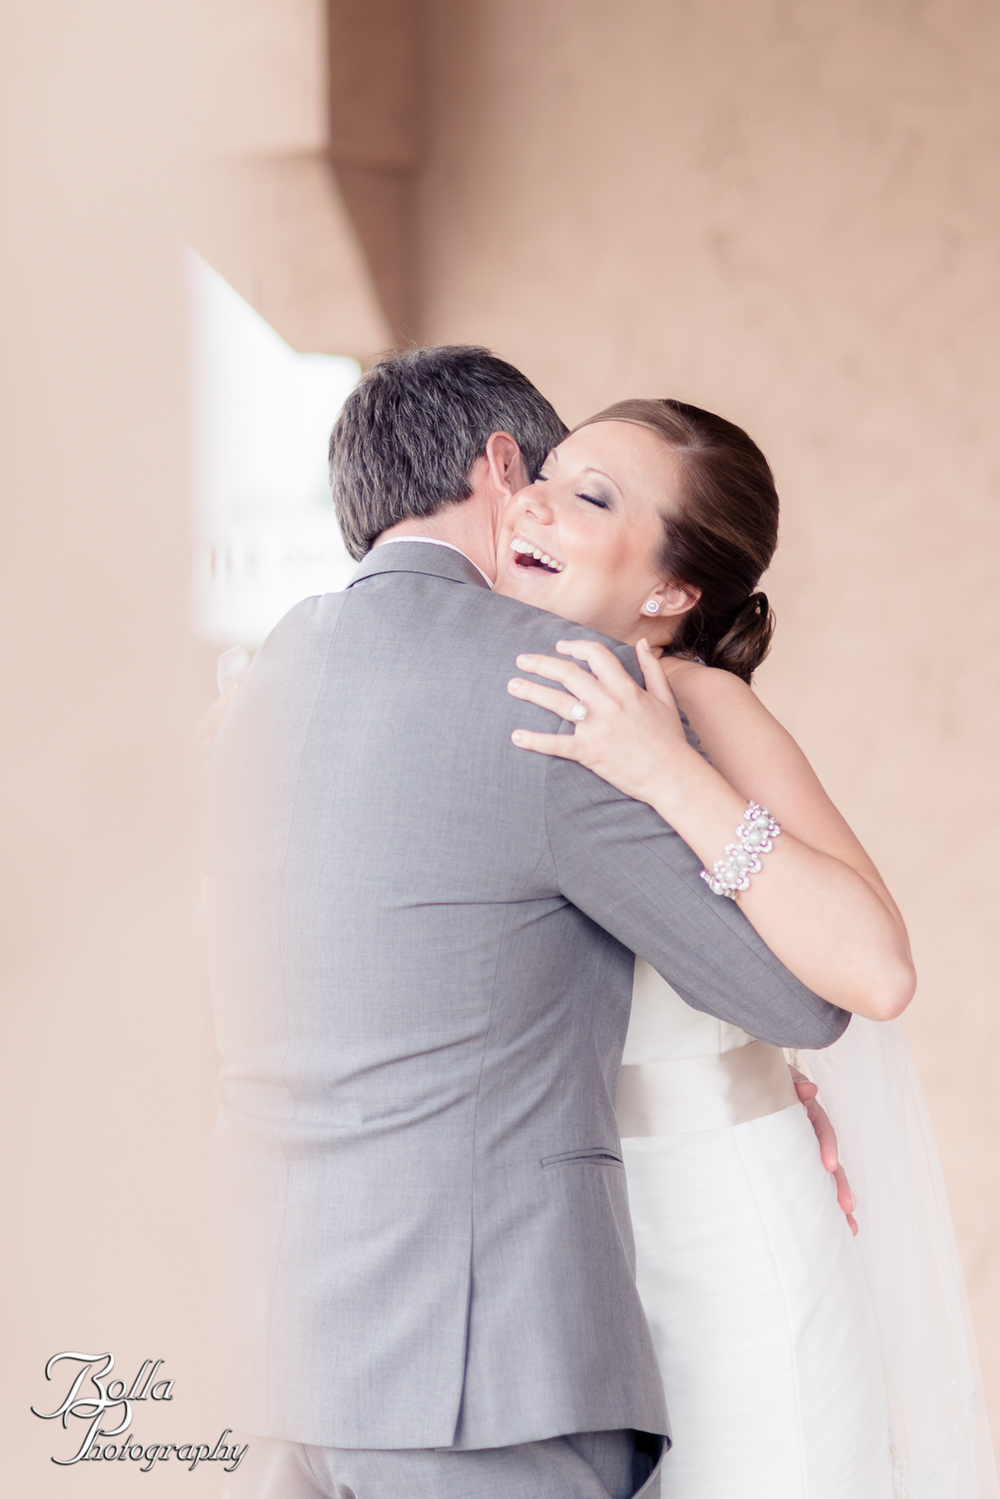 Bolla_Photography_St_Louis_wedding_photographer_Villa_Maire_Winery-0103.jpg